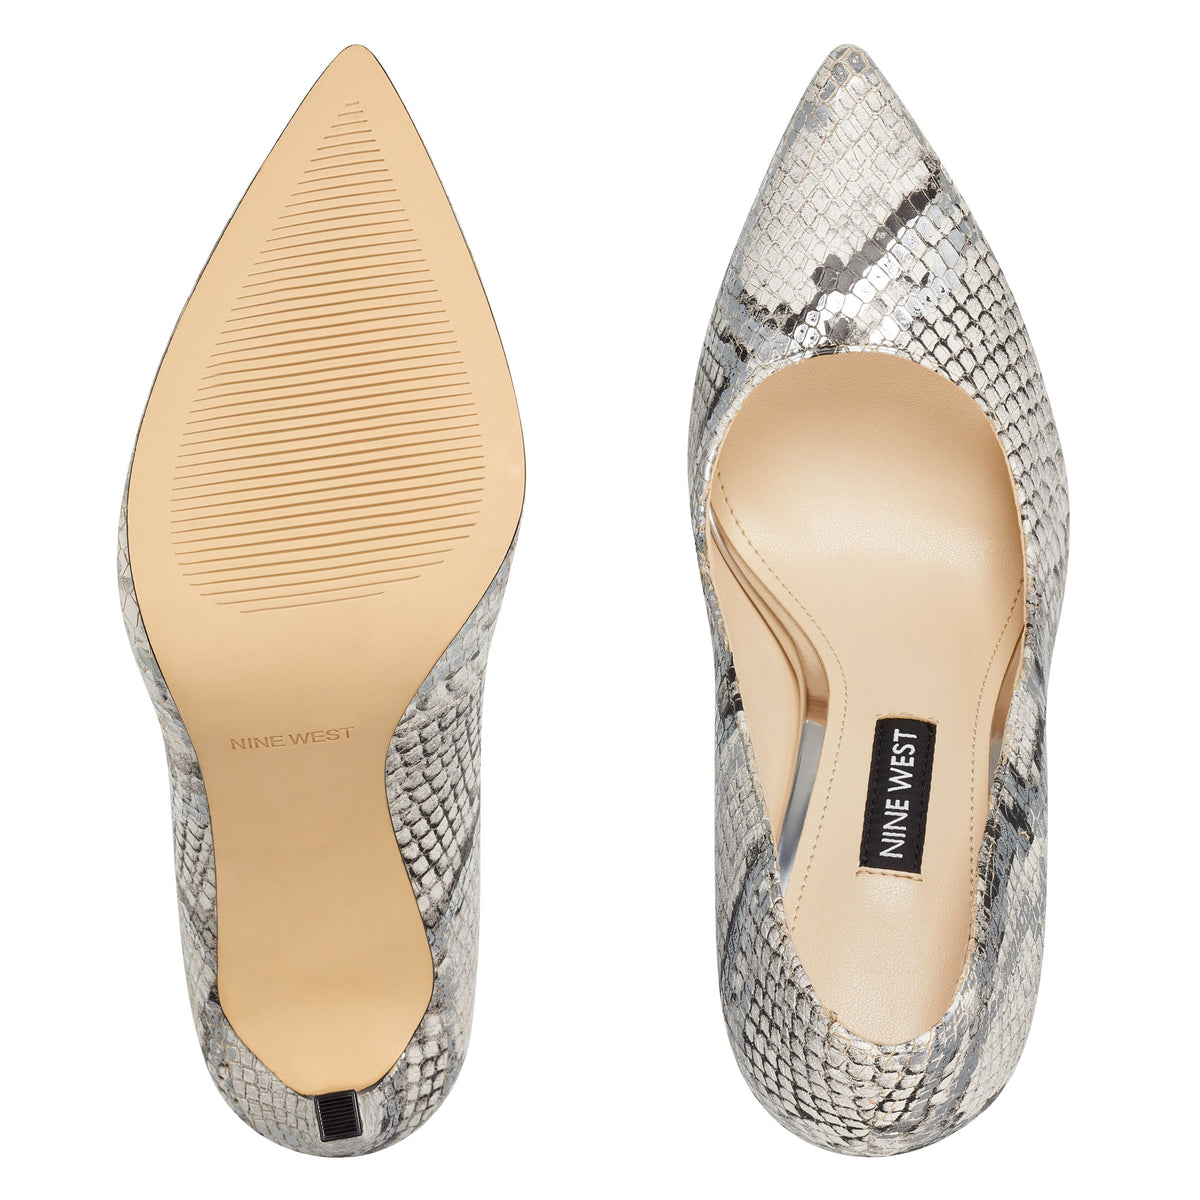 tatiana-pointy-toe-pumps-in-metallic-painted-snake-print